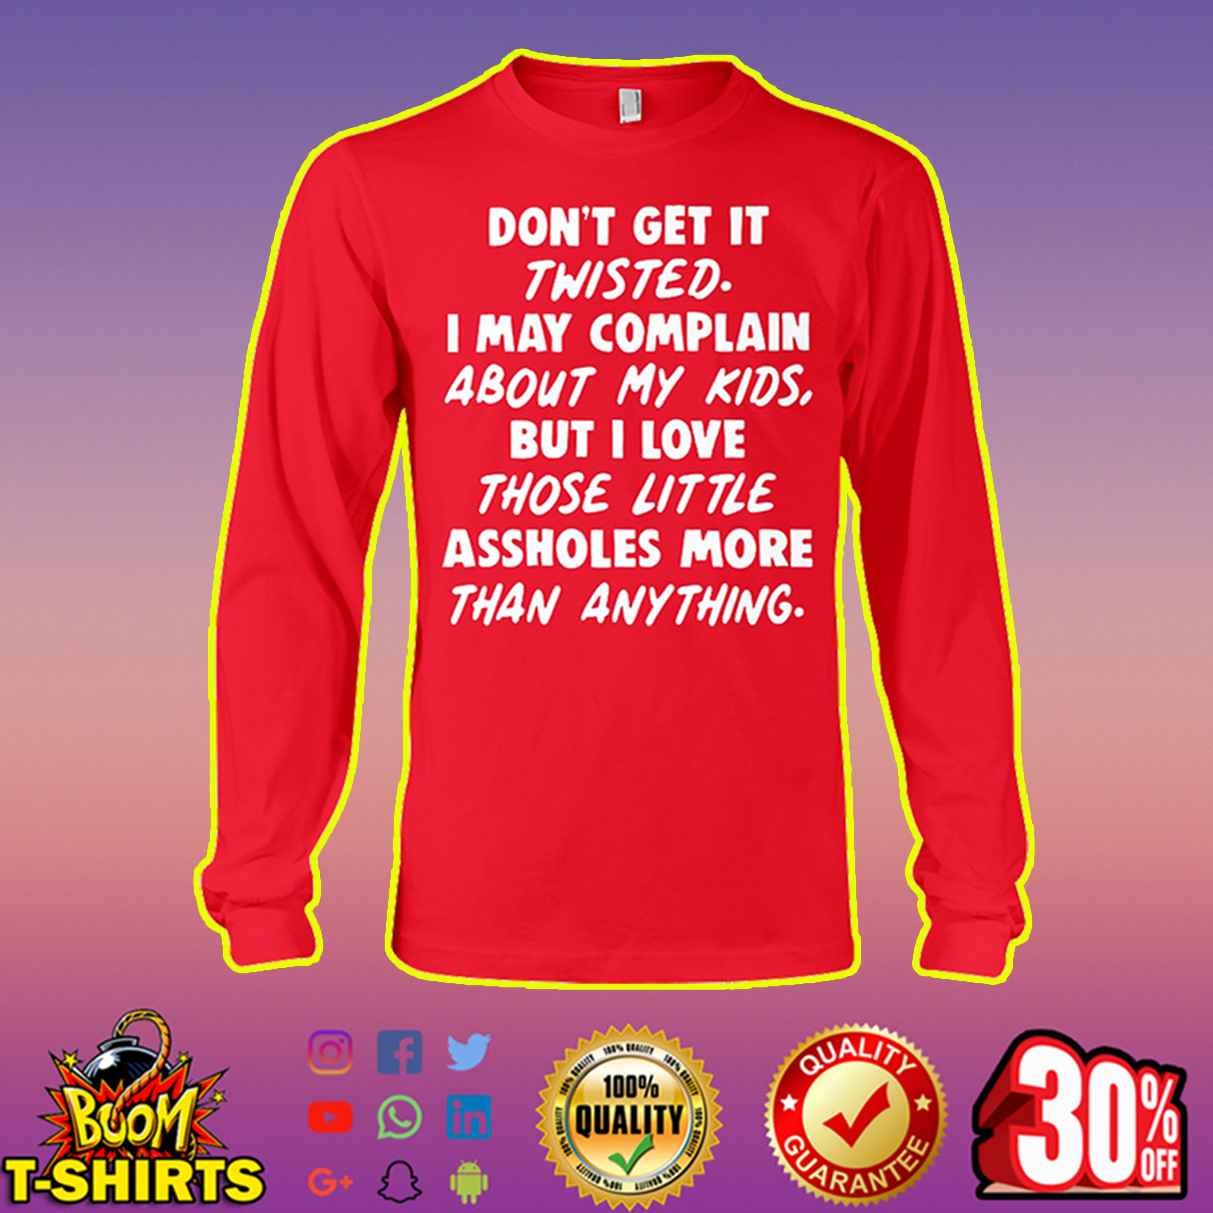 Don't get it twisted long sleeve tee